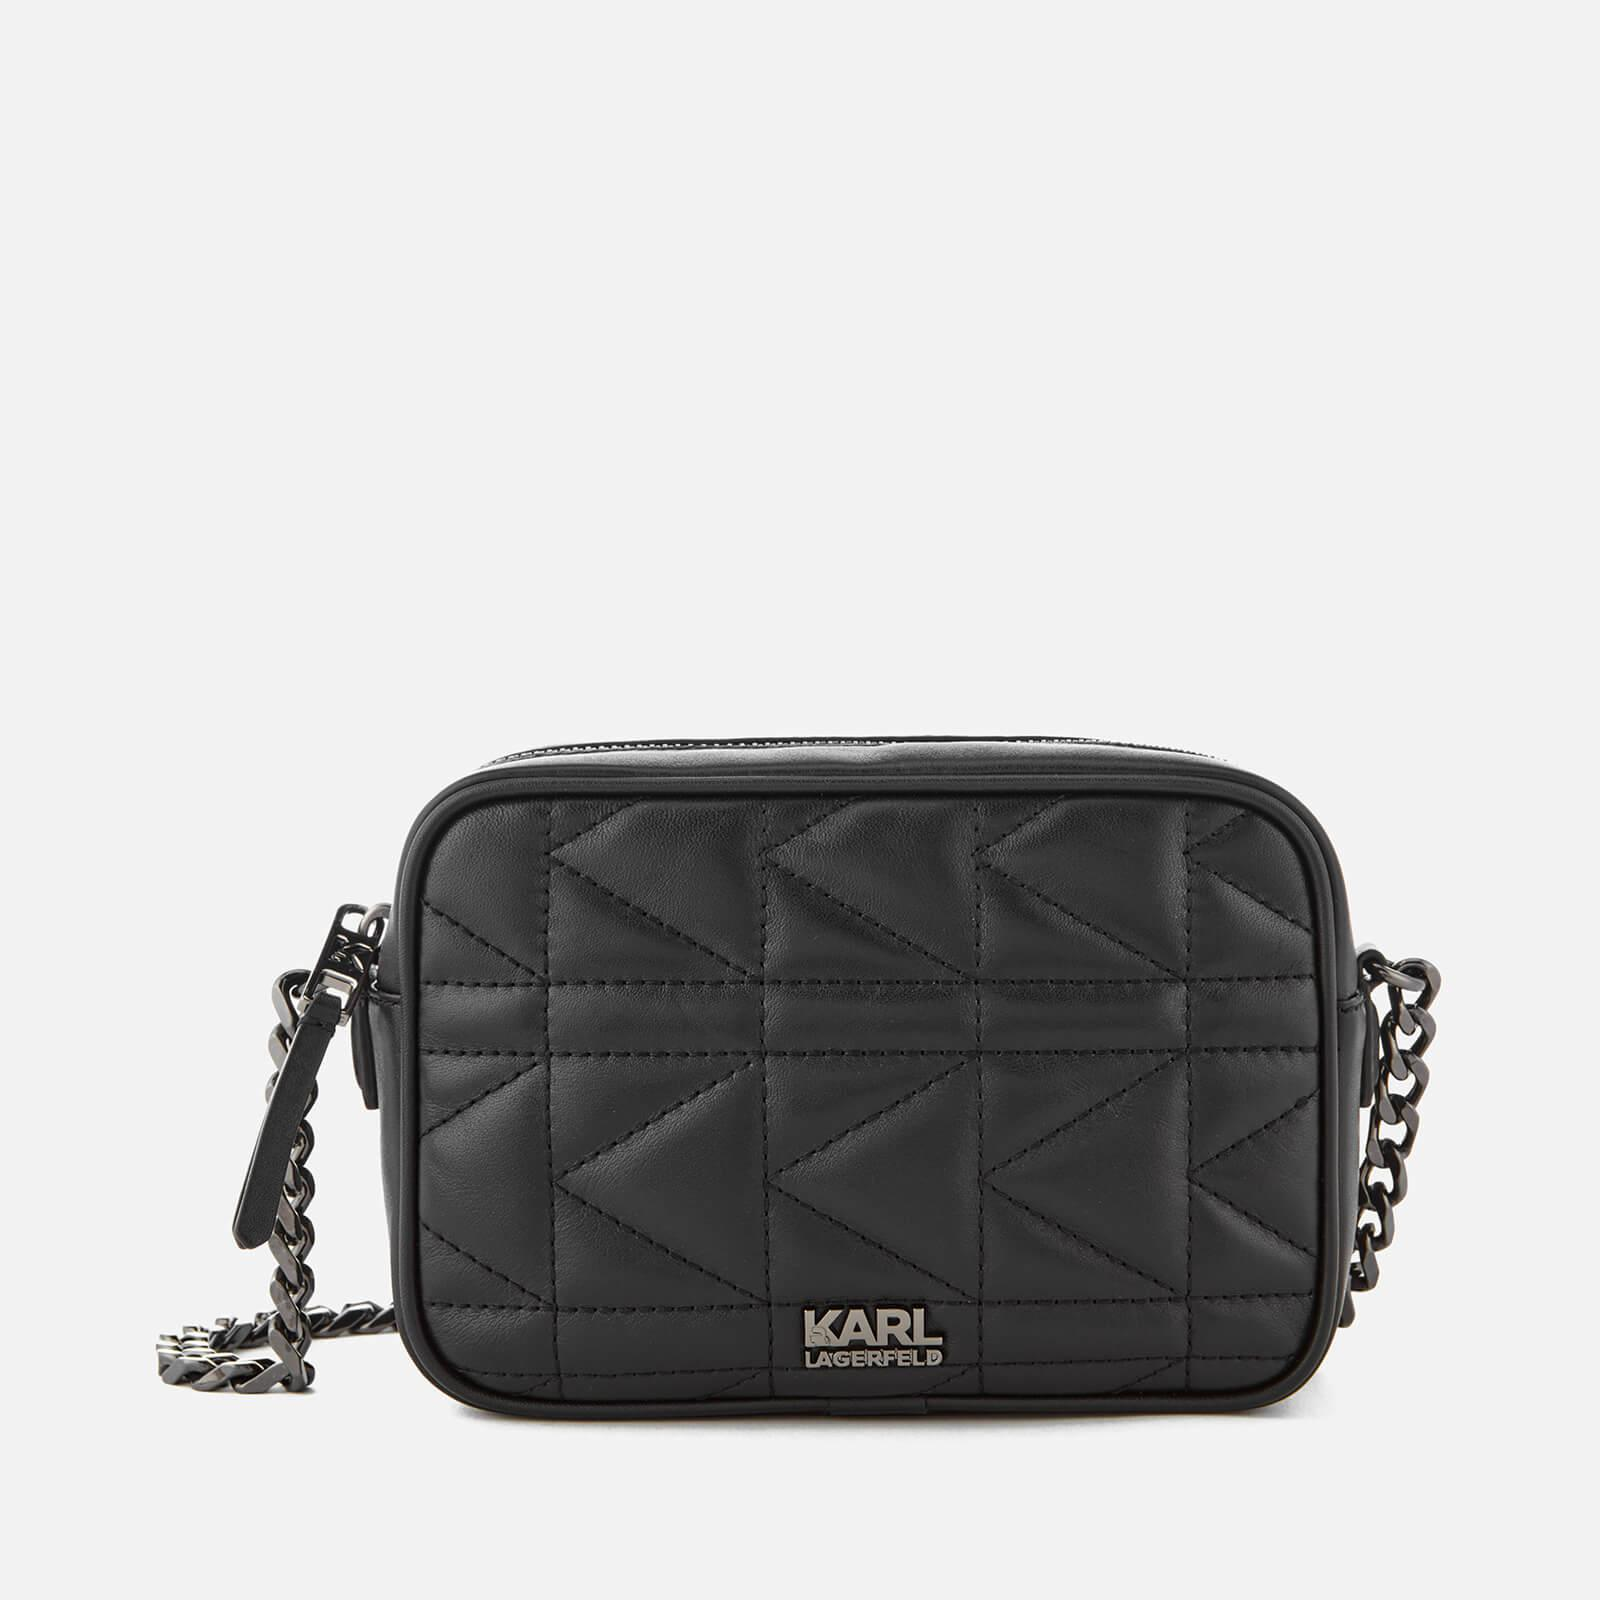 K/Kuilted Crossbody Bag in Black Calf Leather Karl Lagerfeld qUs8MHXOqw